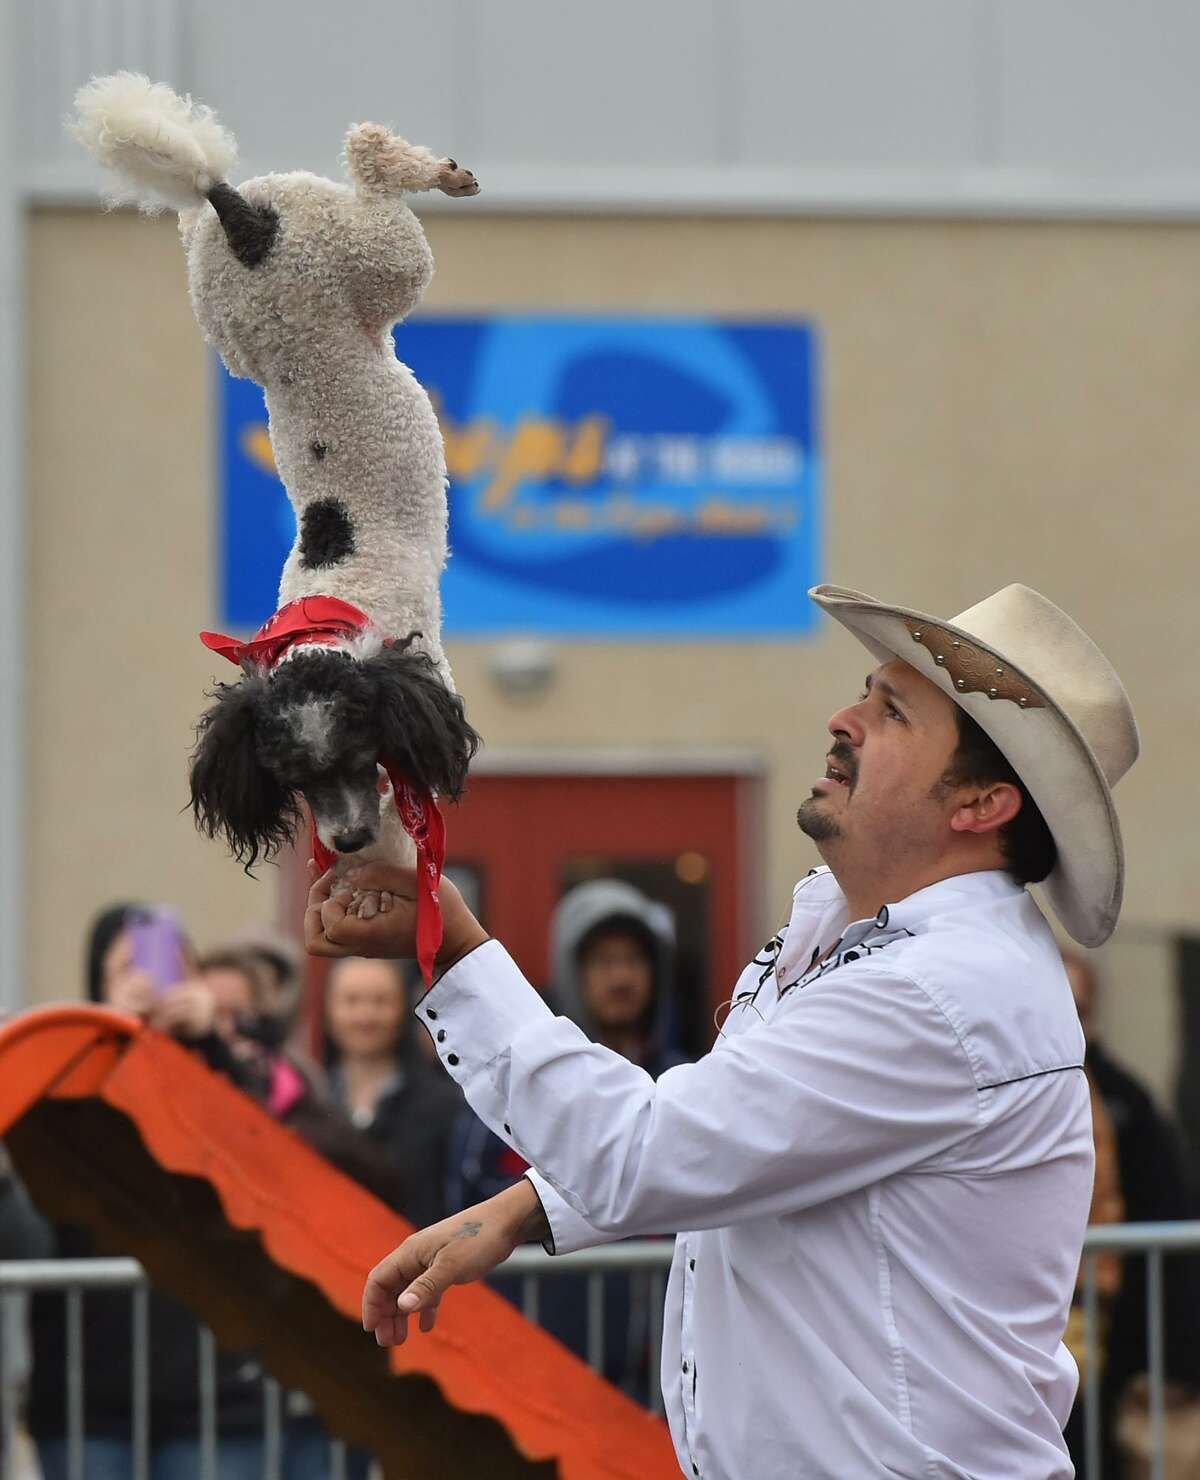 One of the canine entertainers balances on its front paws in Jorge Pompeyo's palm. The family wants to show audience members what rescue dogs can accomplish.